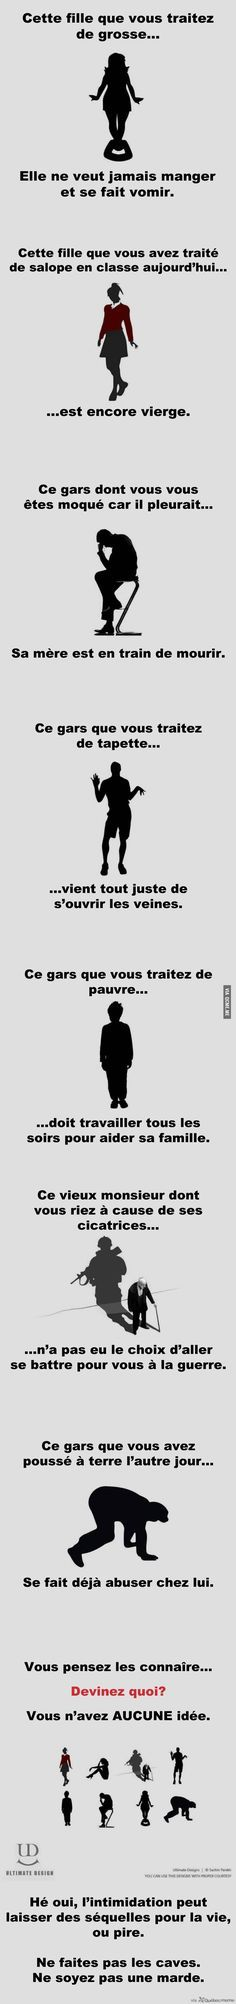 C'est vrai, stop au violence. Quote Citation, French Quotes, Bad Mood, Positive Attitude, Proverbs, True Stories, Quotations, Affirmations, Sad